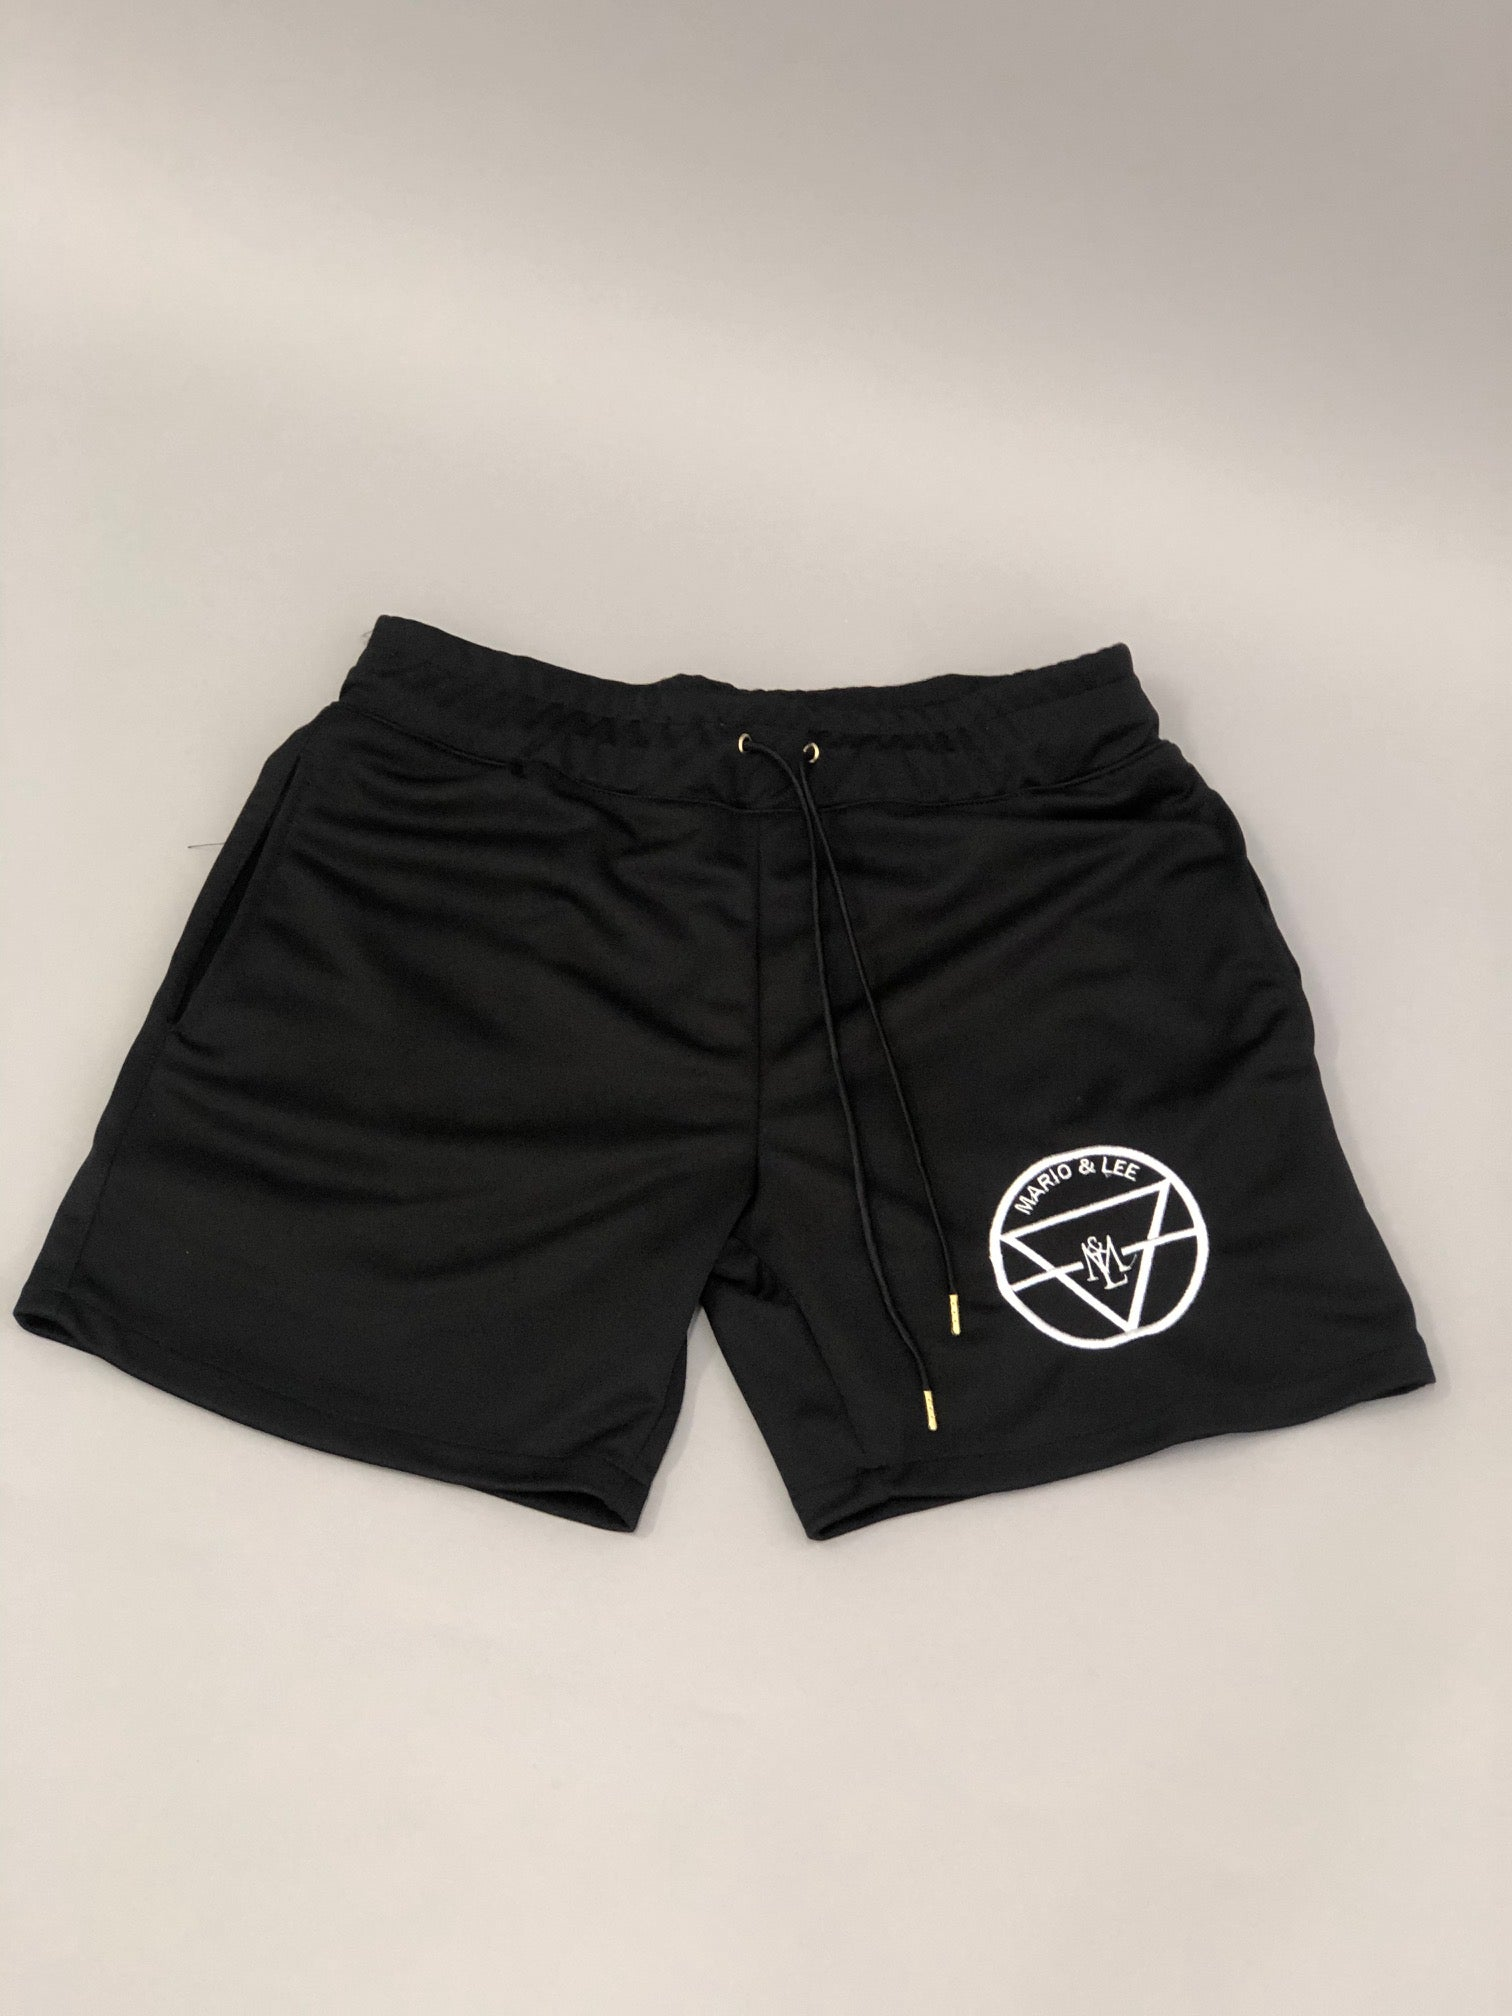 Black Shorts Vol 1